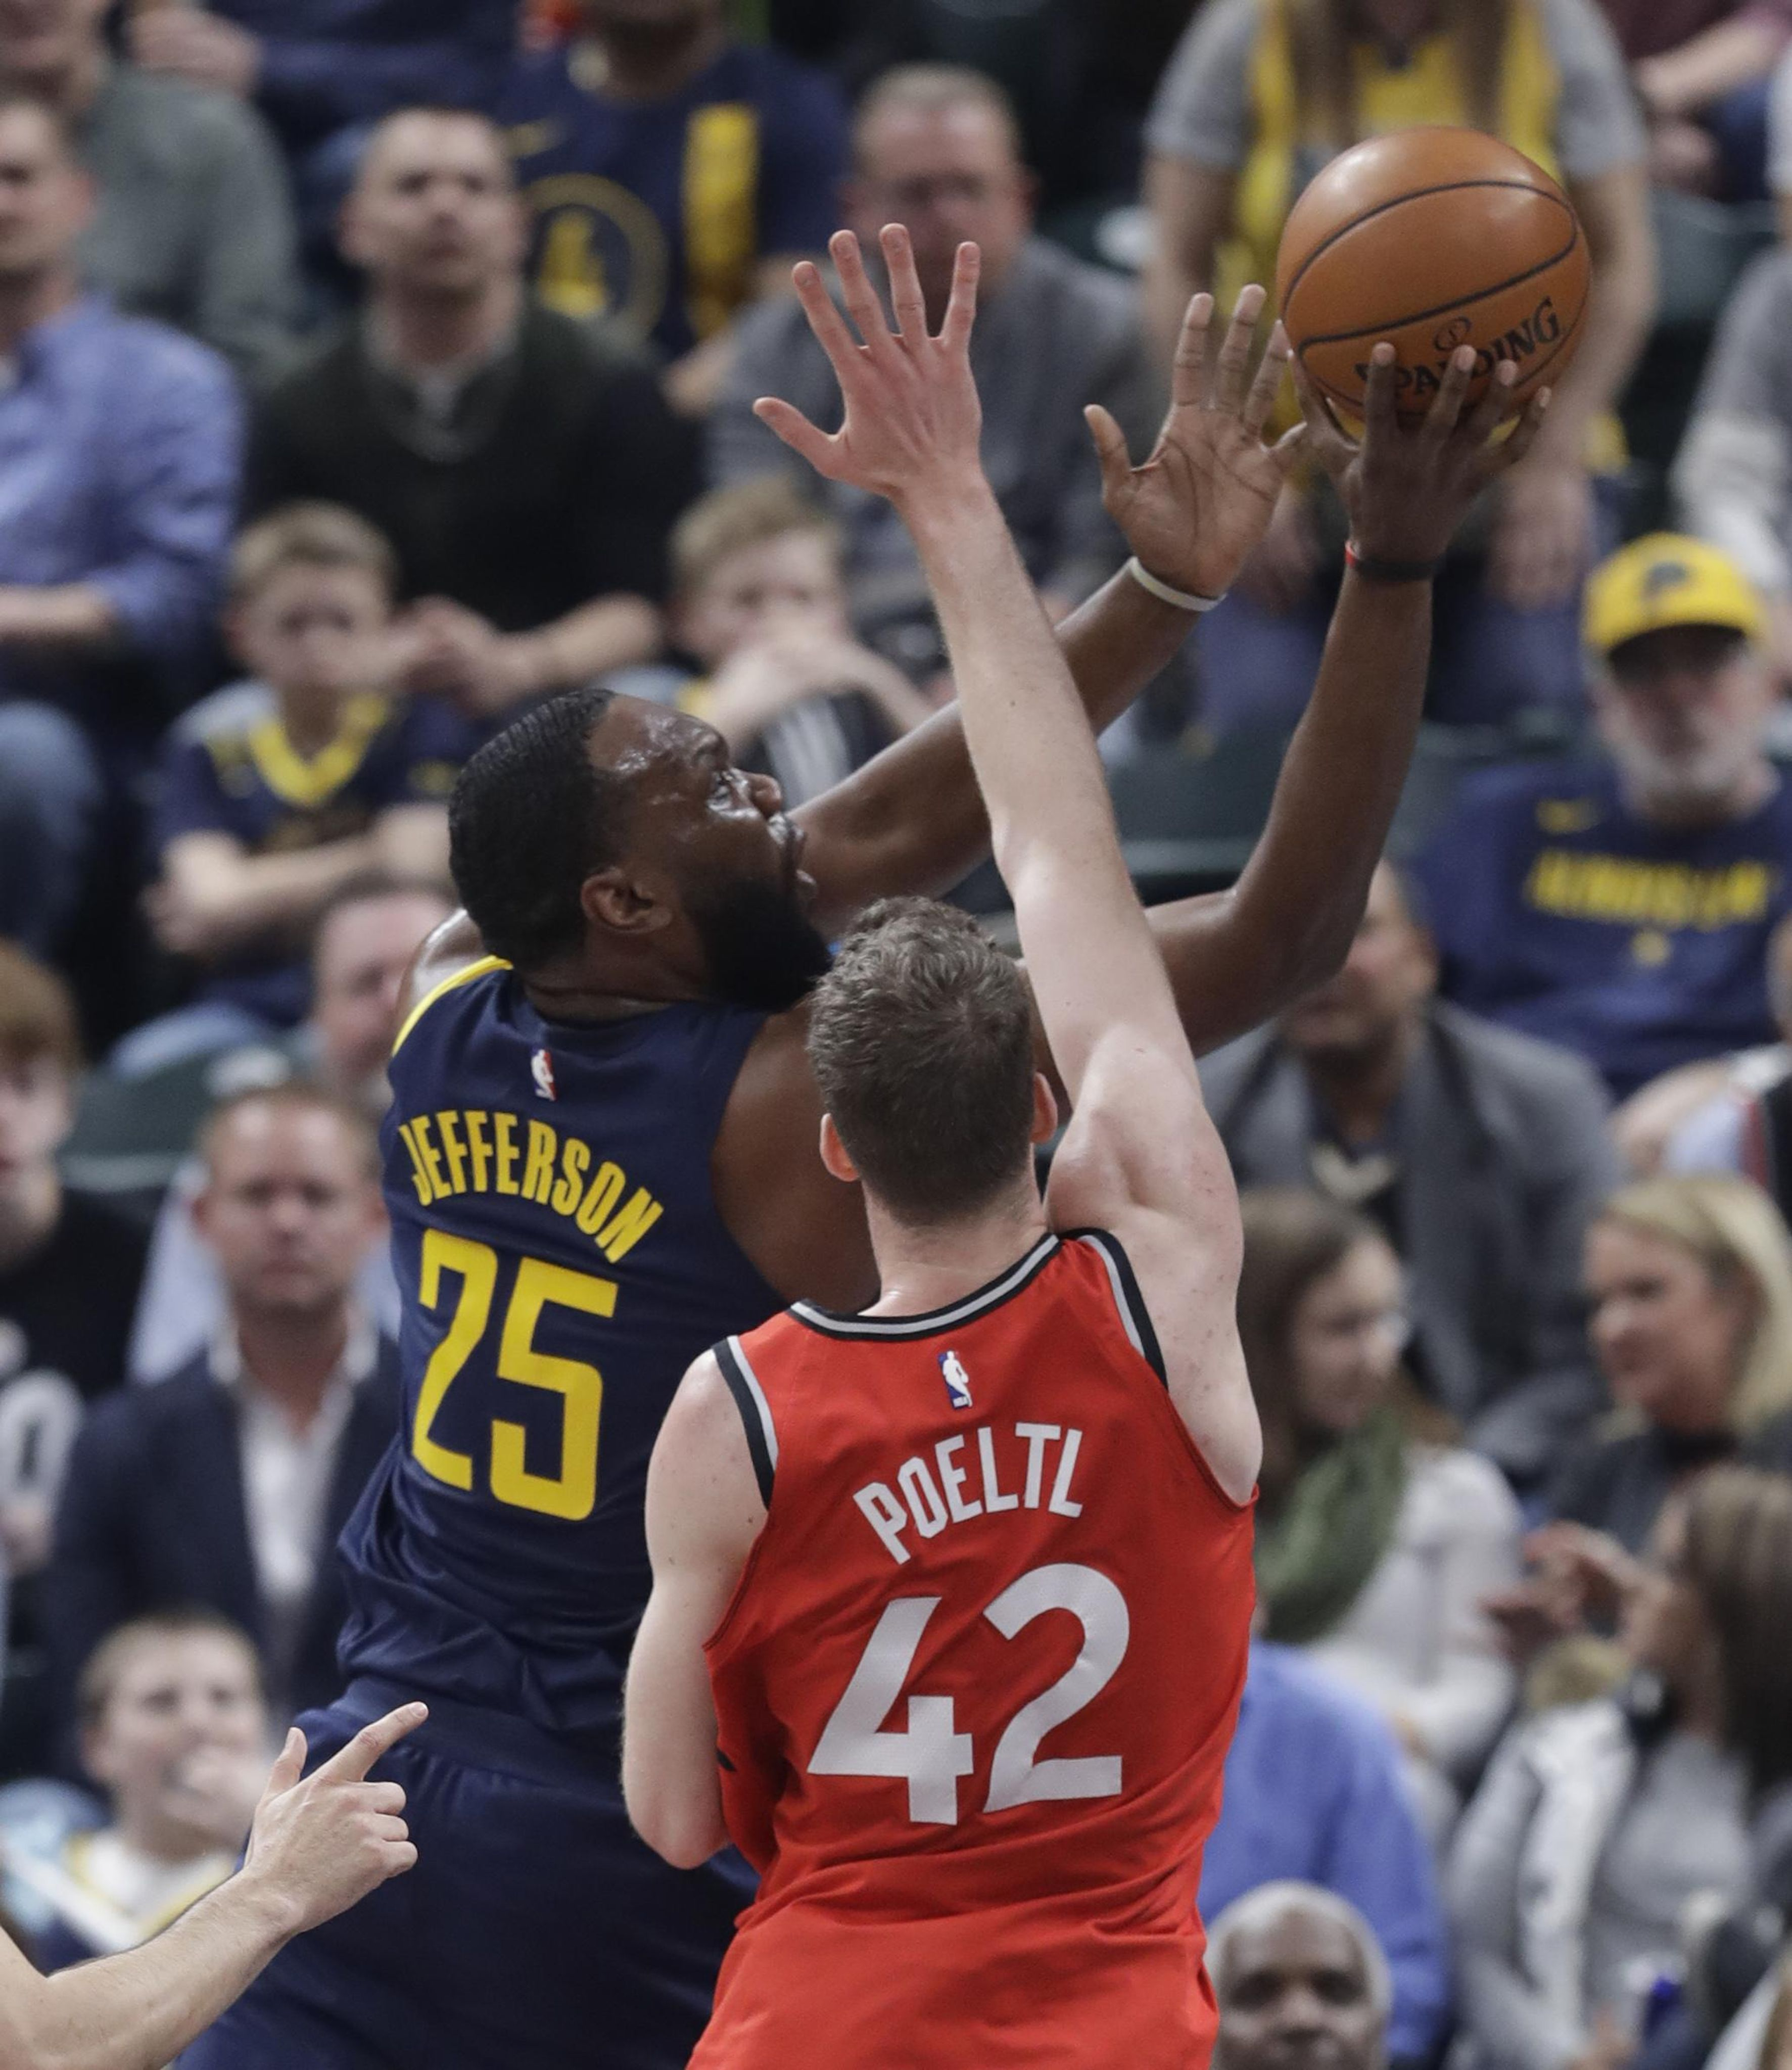 Raptors_pacers_basketball_57889_s3546x4096